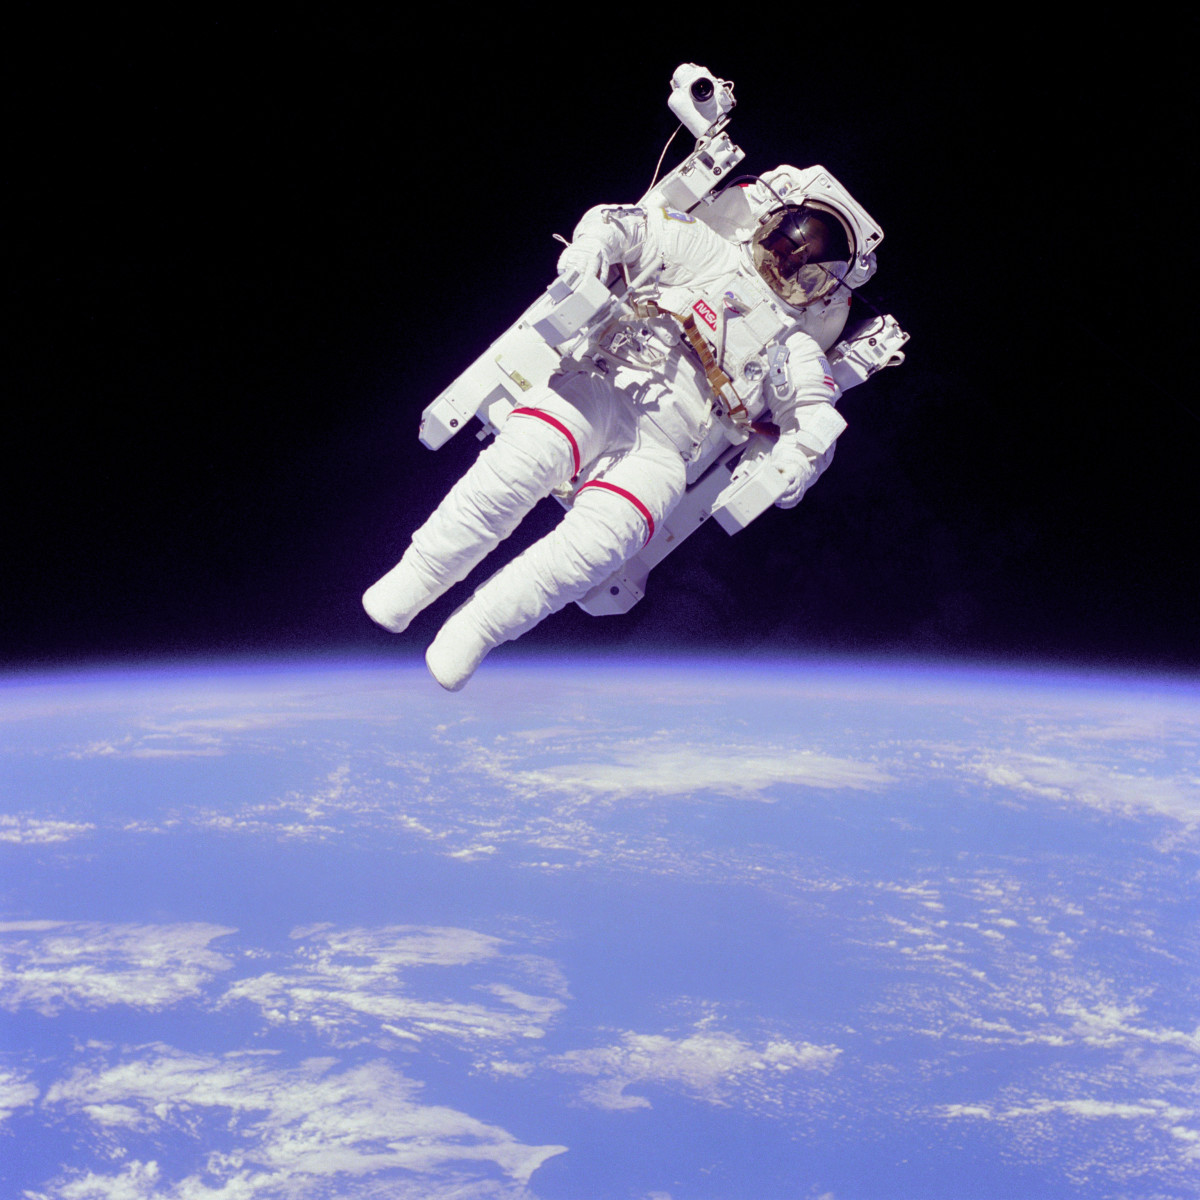 NASA Astronaut Bruce McCandless II using a Manned Maneuvering Unit outside Space Shuttle Challenger on shuttle mission STS-41-B in 1984. (Photo: Wikimedia Commons)